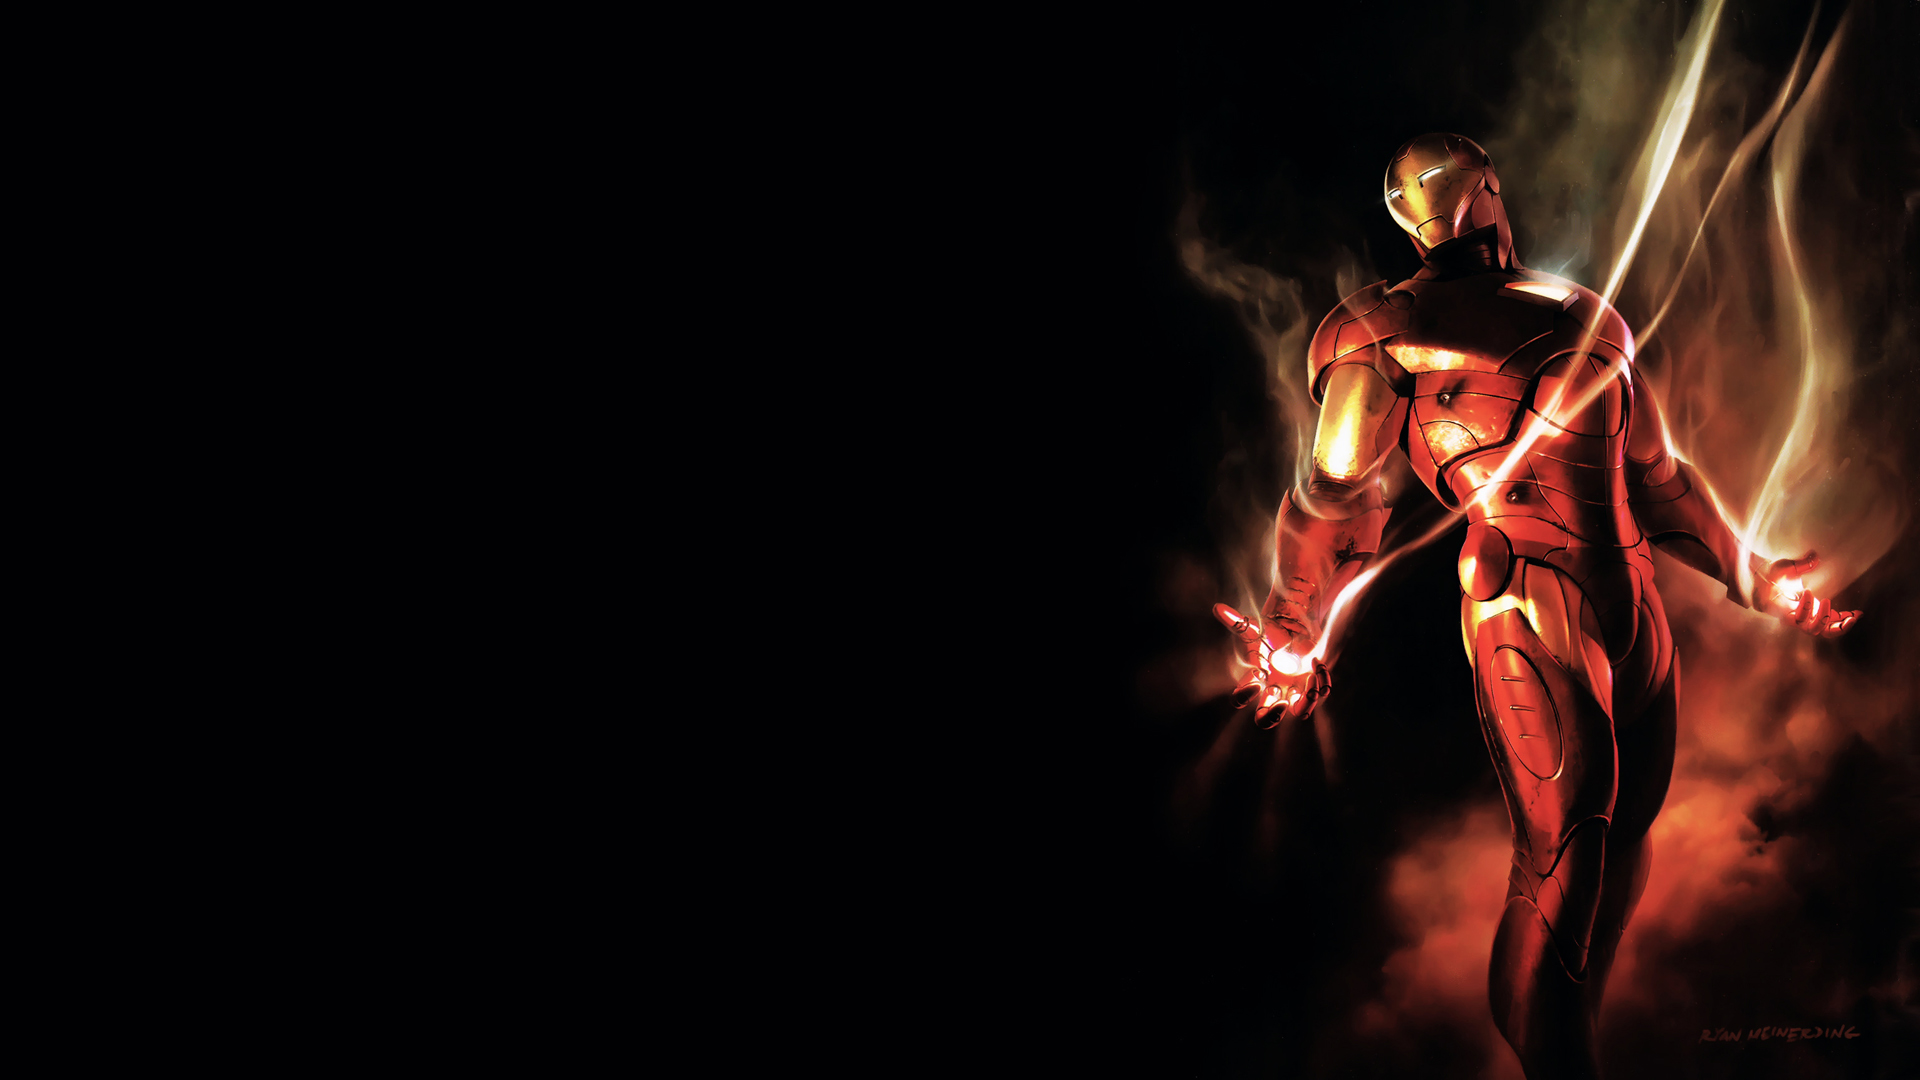 Iron Man 3 Hd Wallpapers High Resolution: Marvel HD Wallpapers 1080p